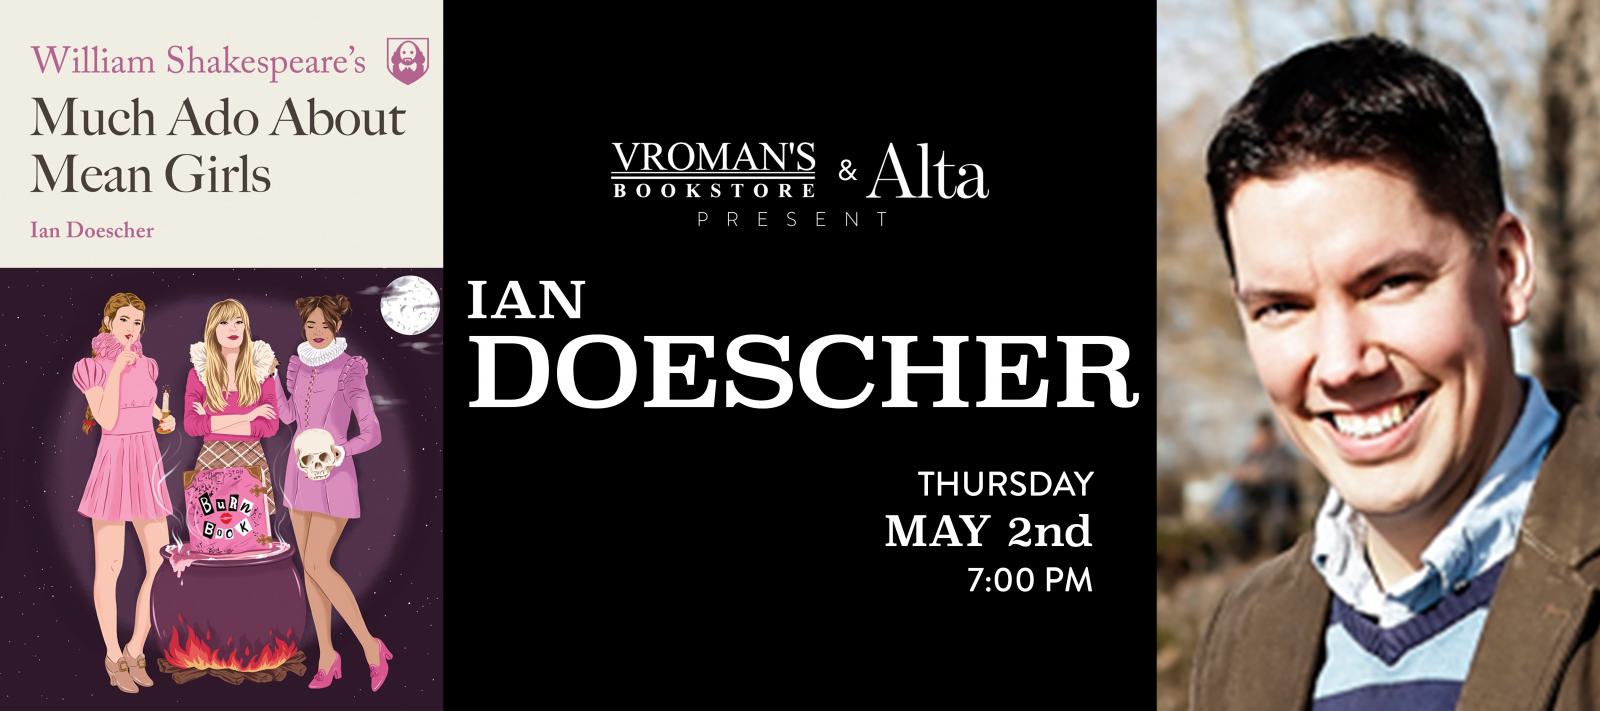 Ian Doescher book signing Thursday May 2nd at 7pm